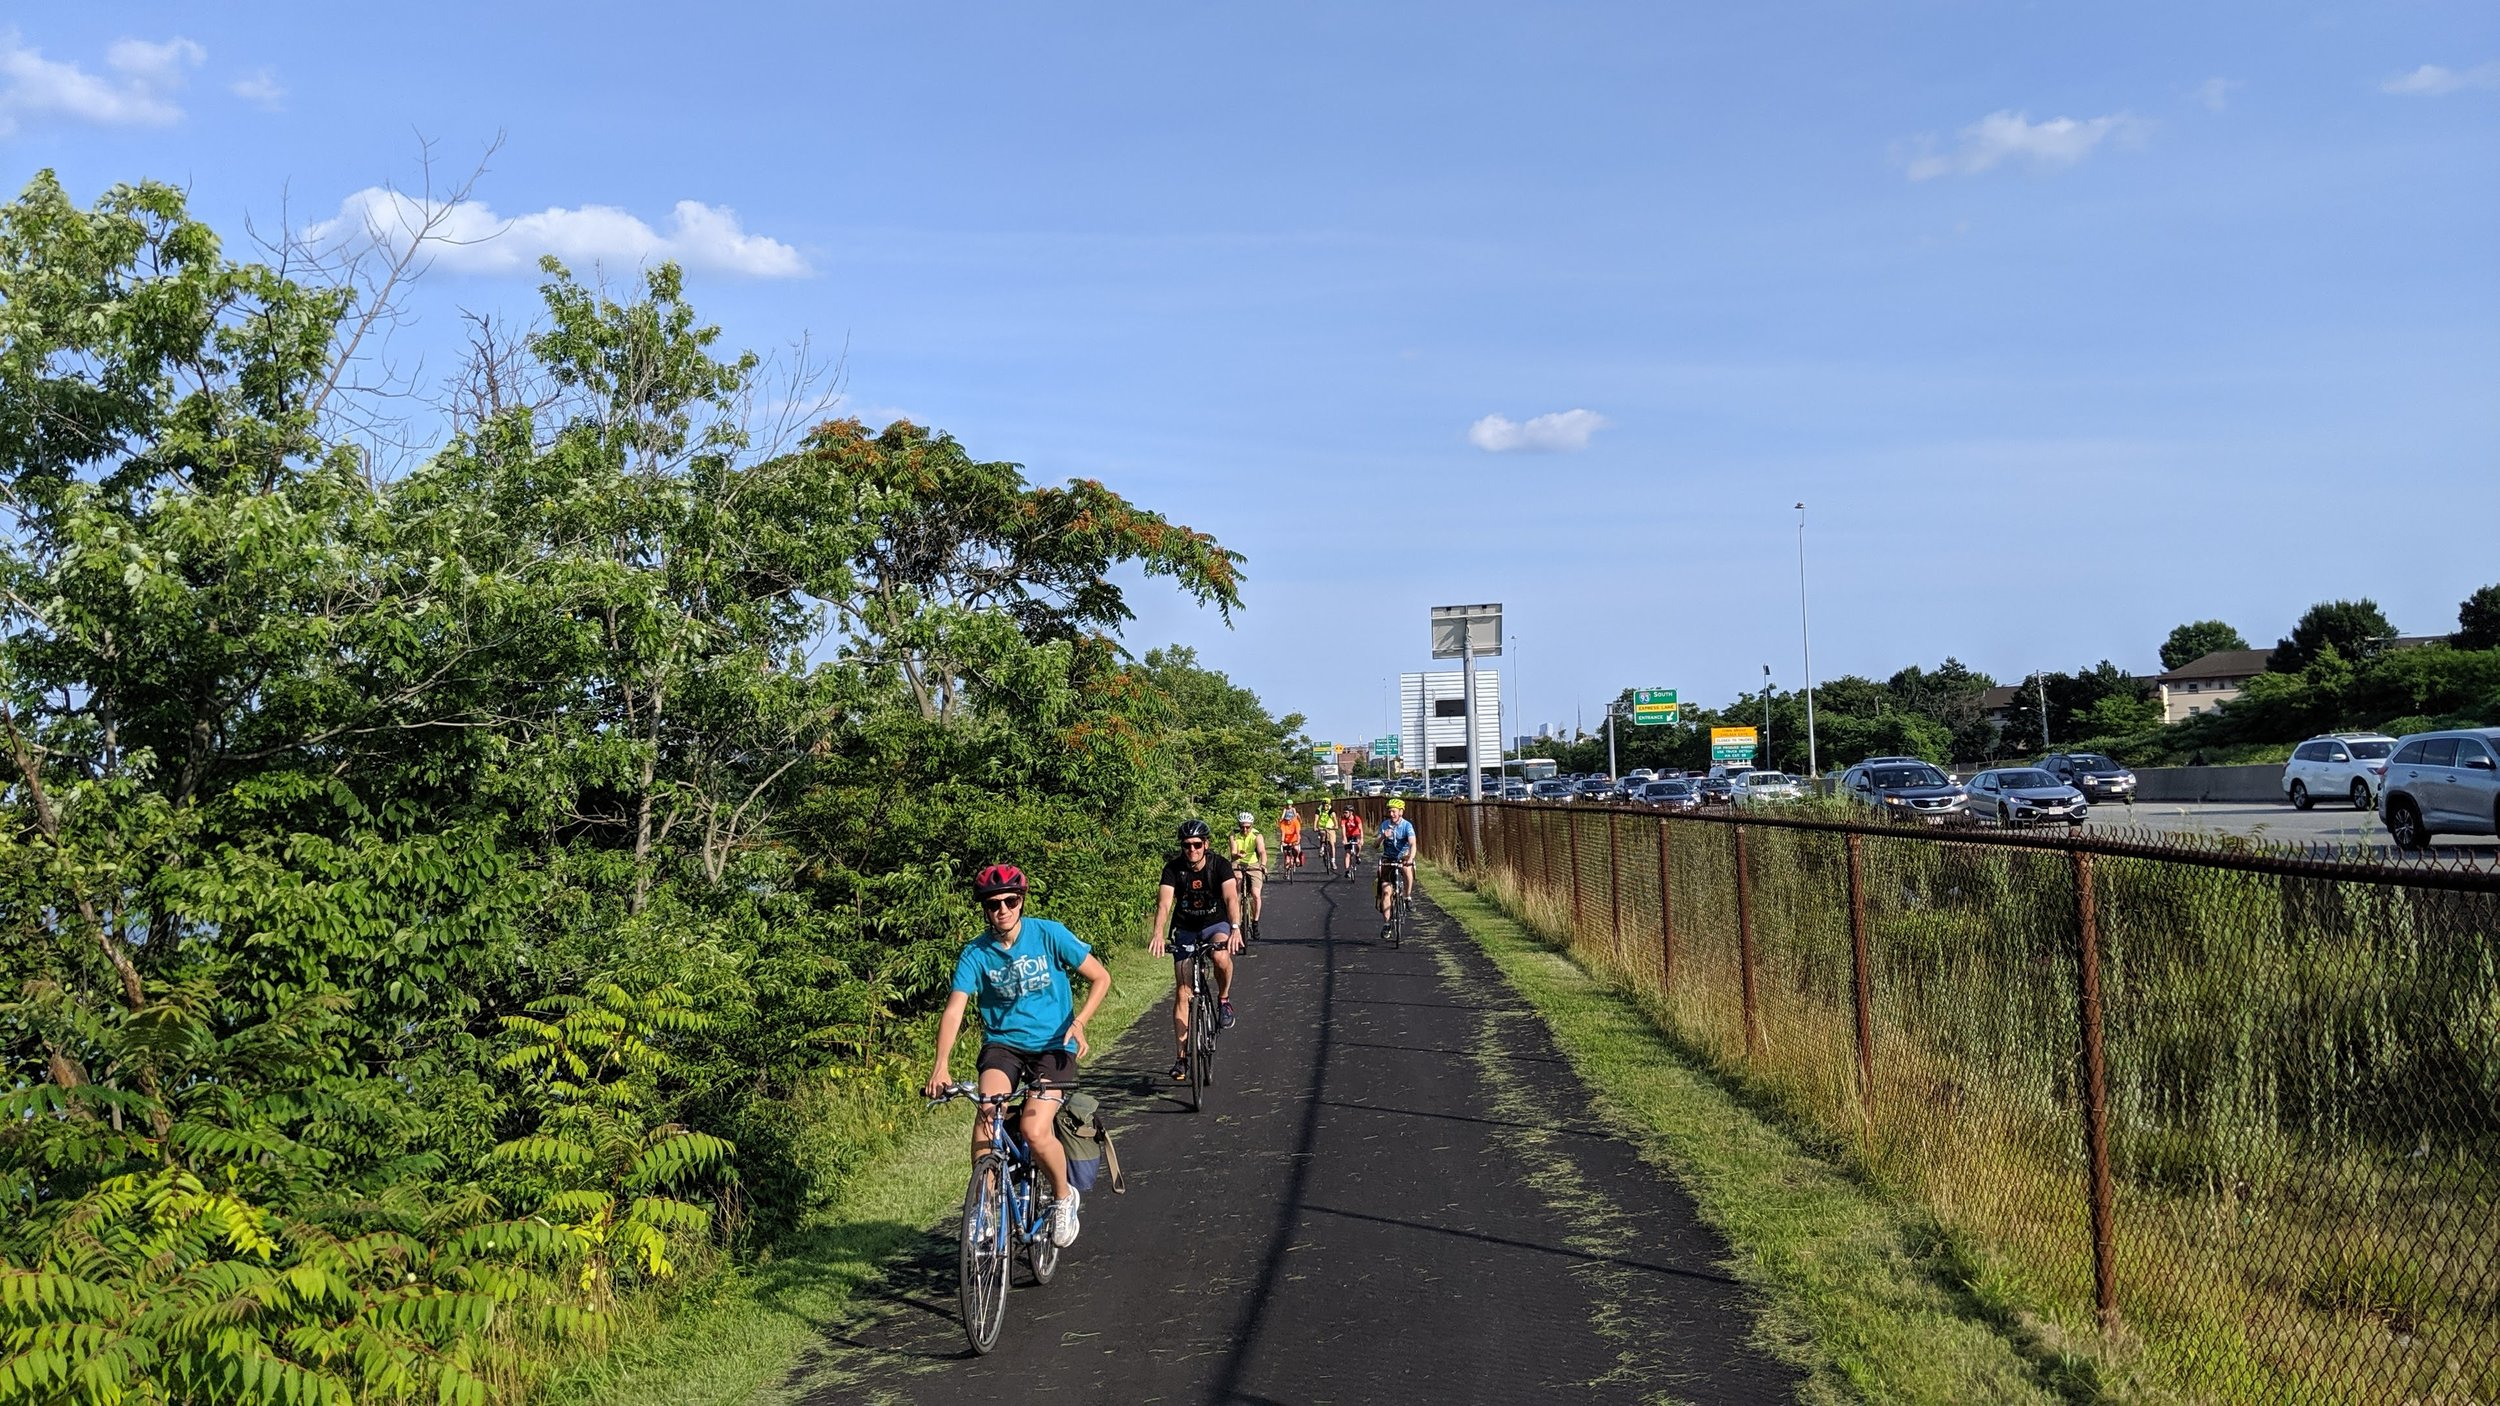 You can bike from  Paddle Boston - Charles River Canoe & Kayak 's Blessing of the Bay boathouse to Macdonald Park. The path is newly paved thanks to MA DCR. - Somerville